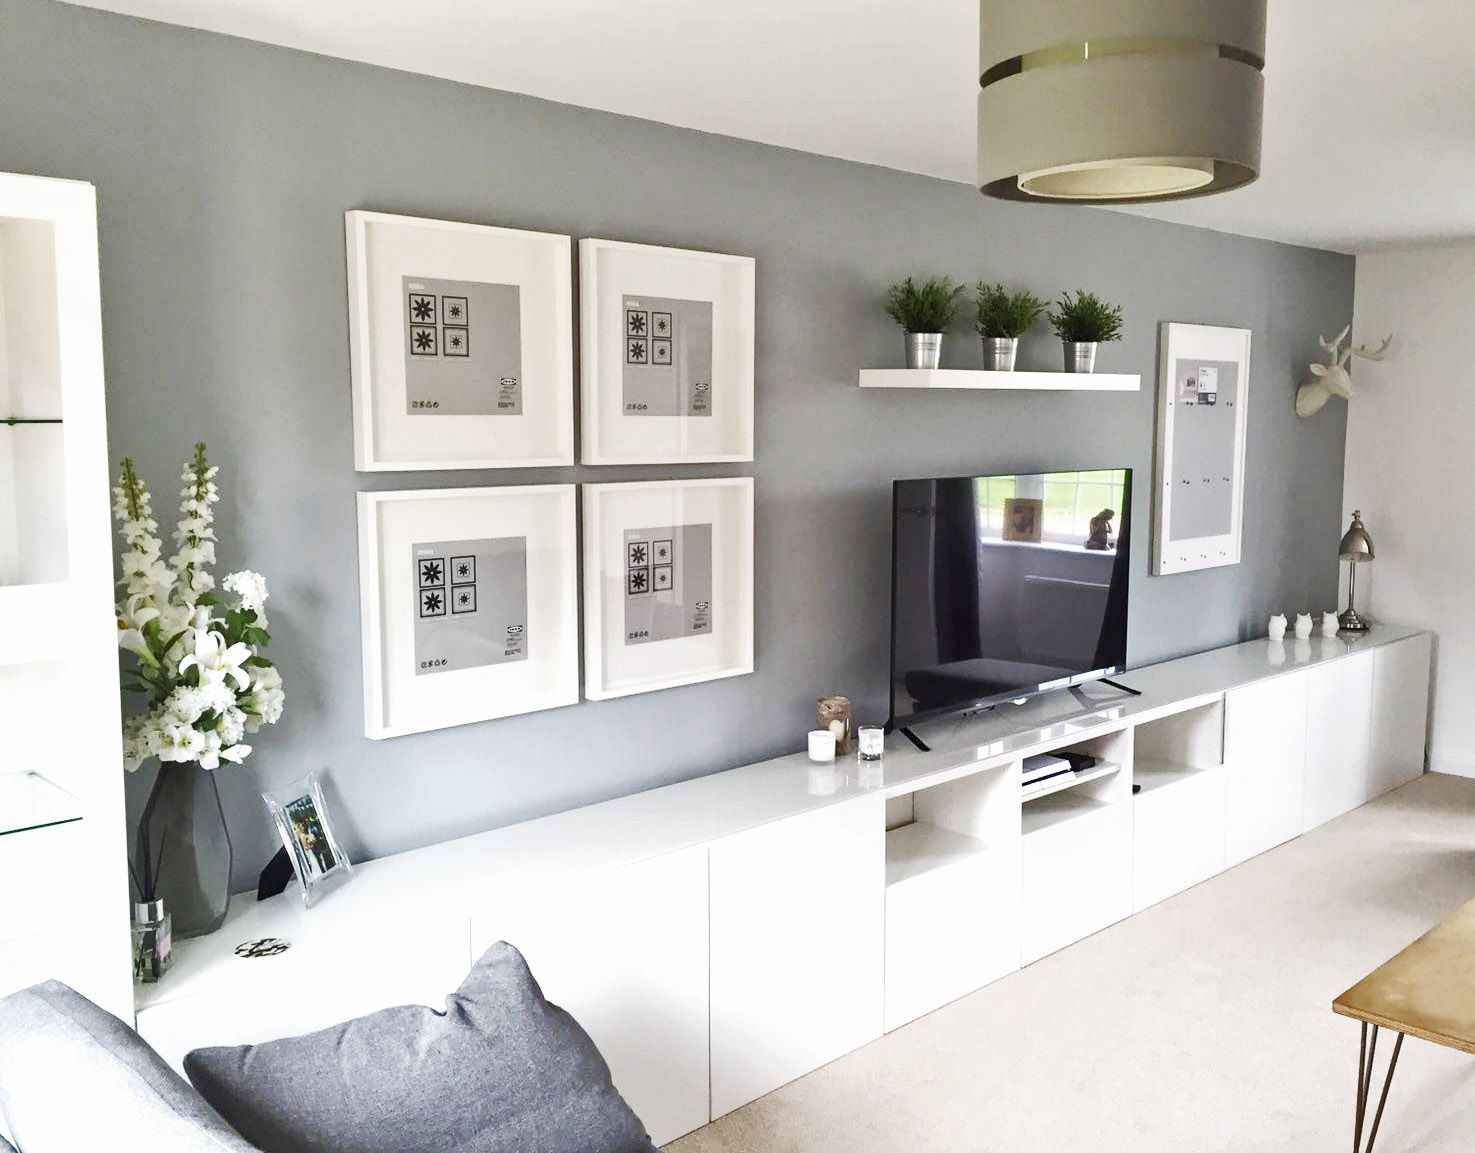 Wohnzimmer / besta ikea | Habitation and interior | Pinterest ...